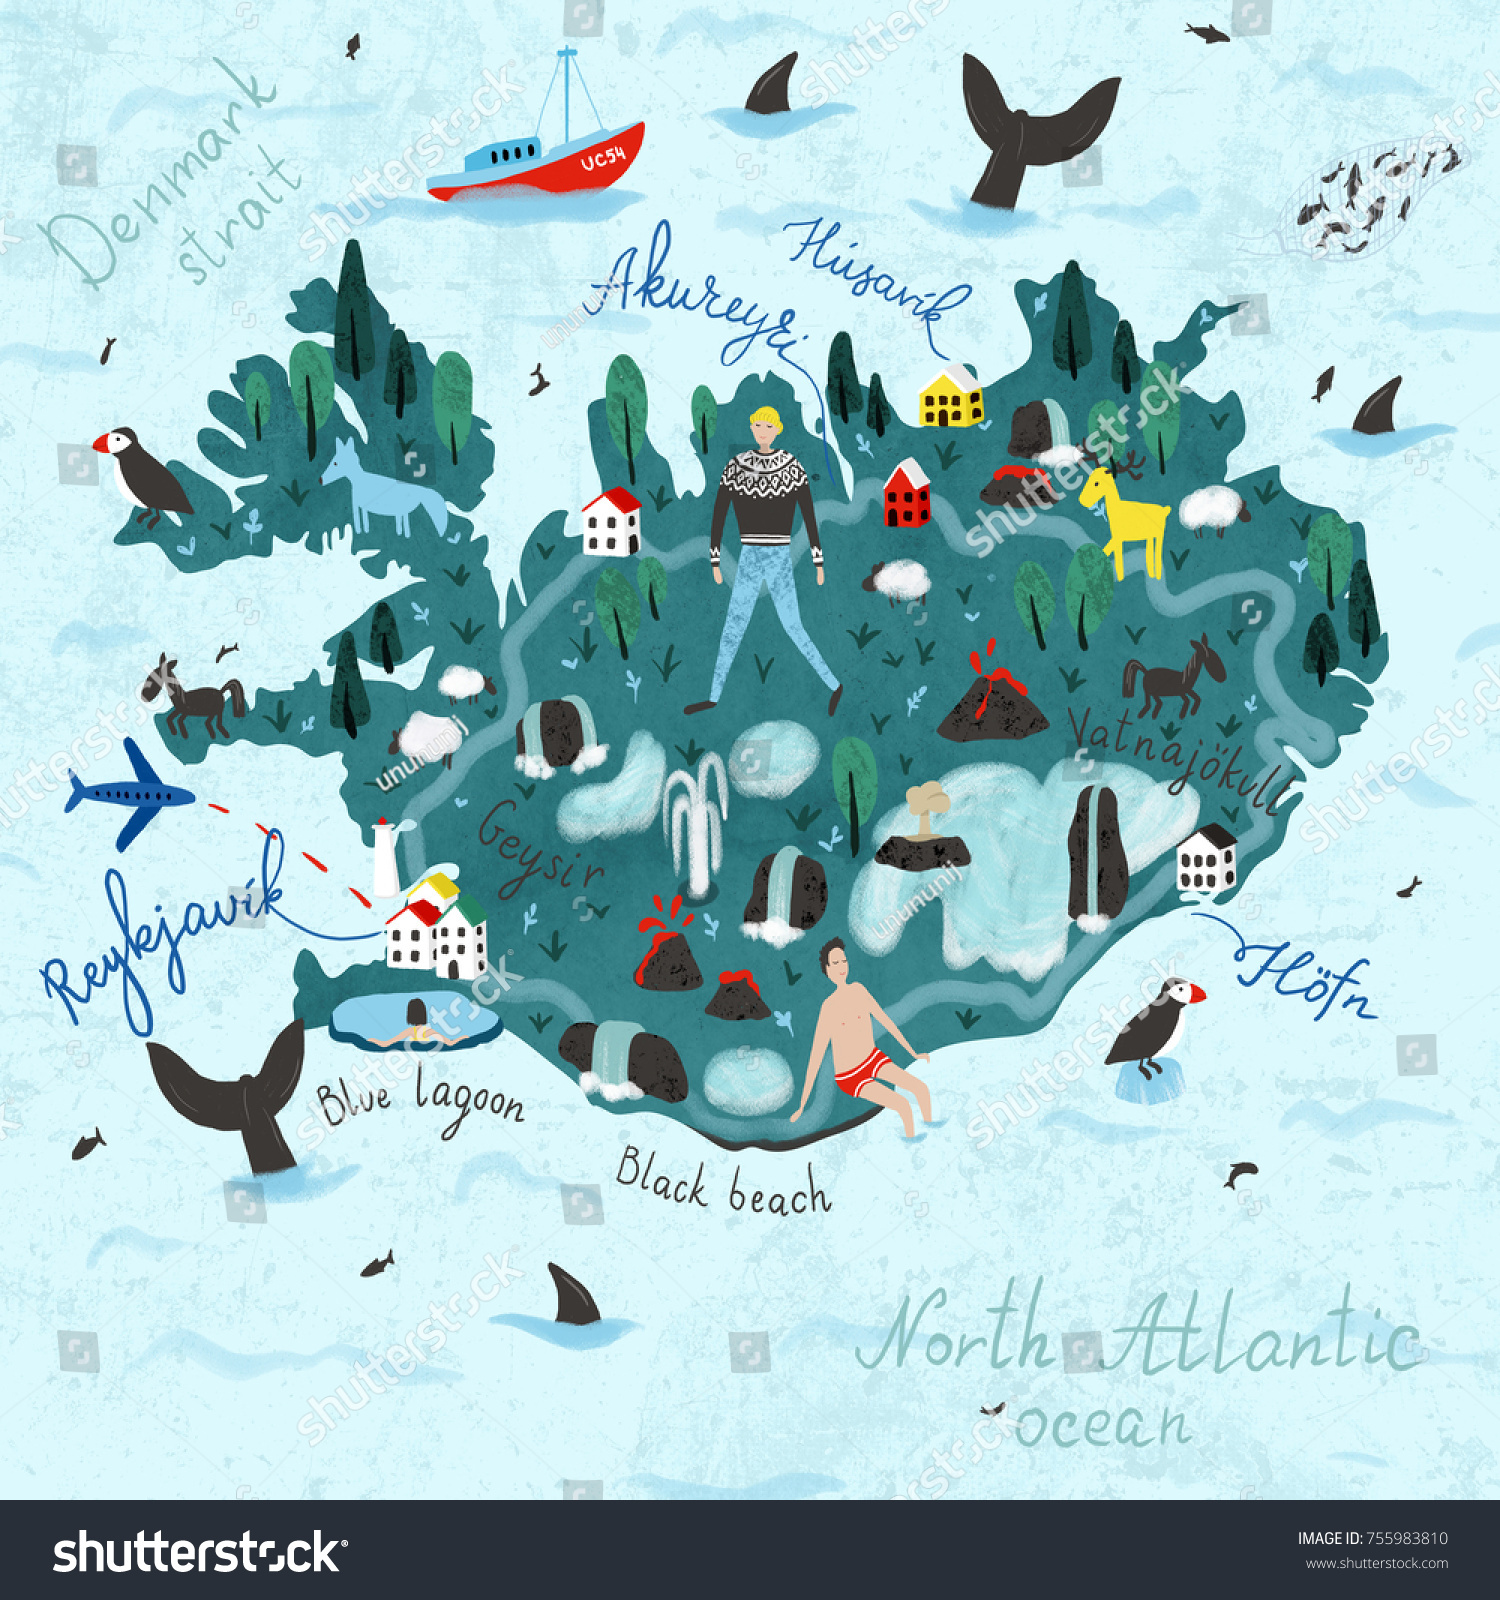 Hand drawn illustration iceland map digital stock illustration hand drawn illustration of iceland map digital art great for guidebooks magazines sciox Gallery